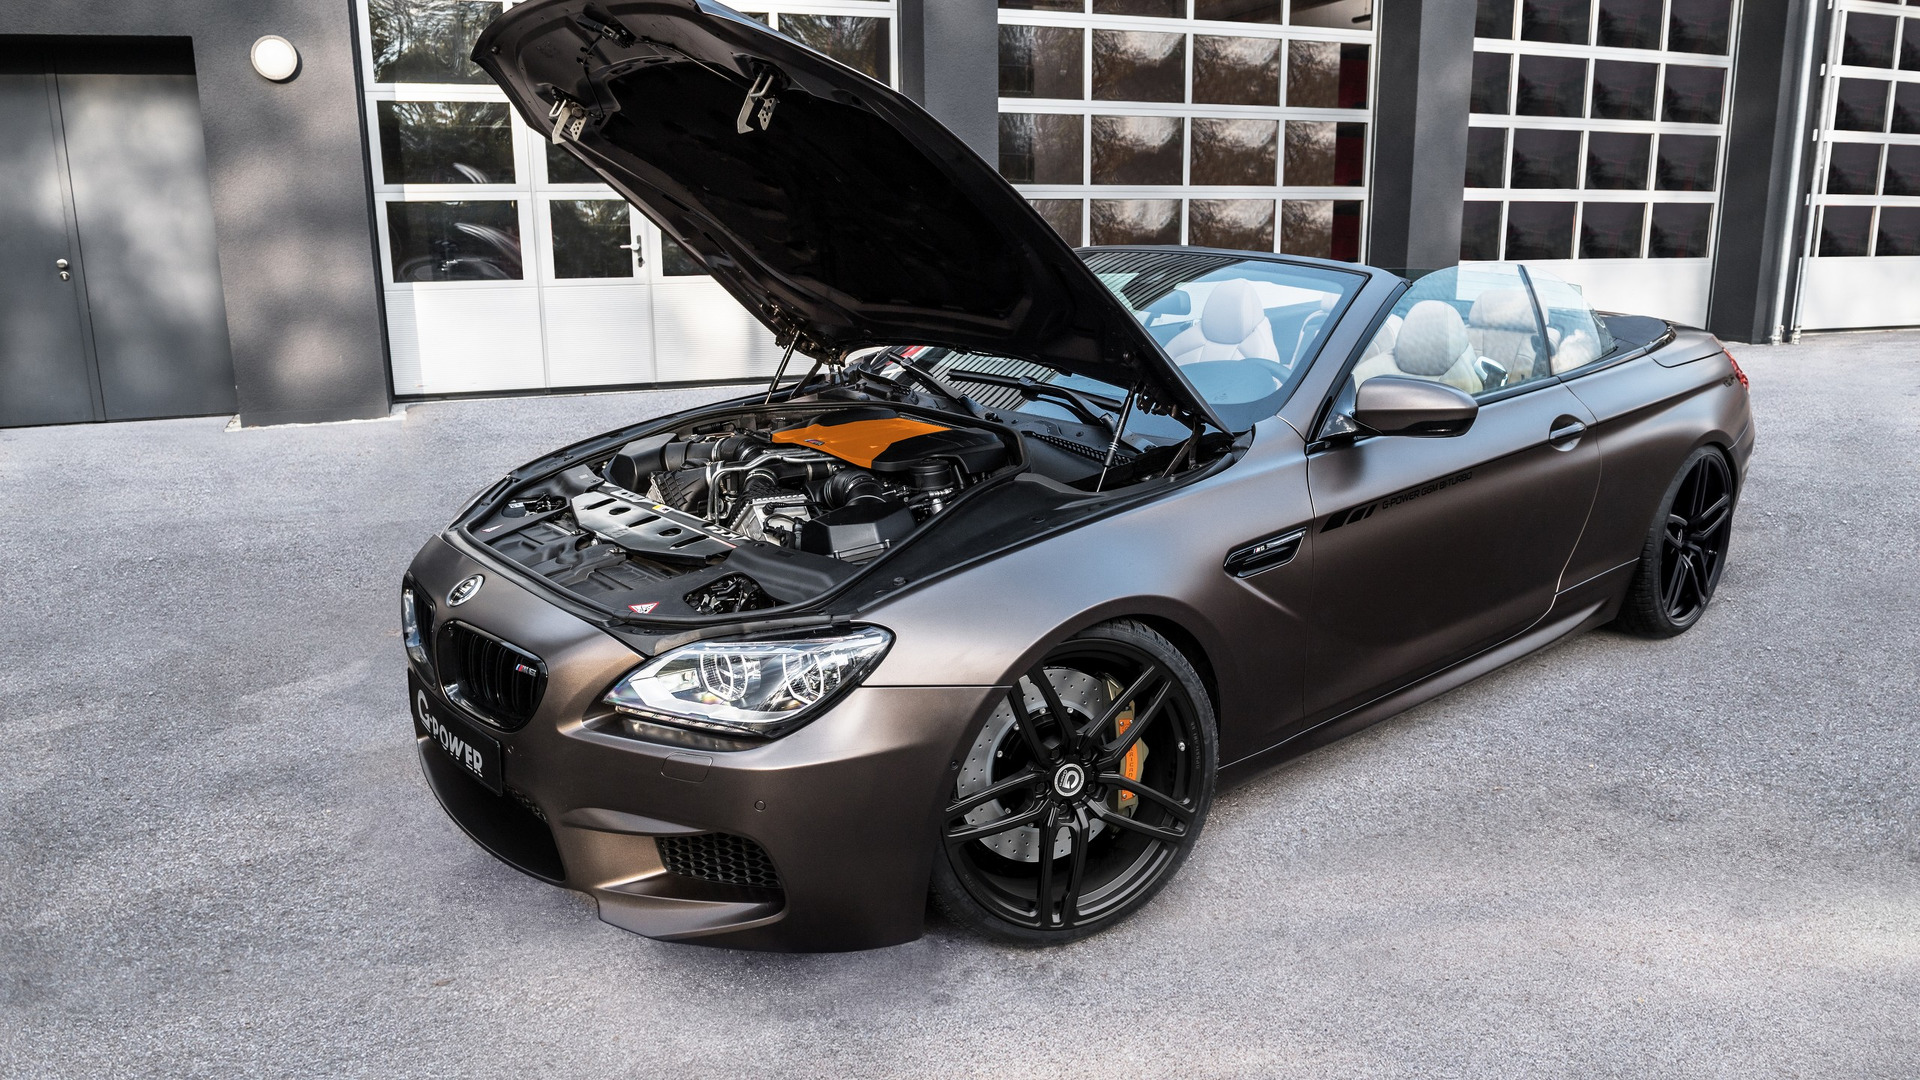 overkill? g-power gives 800 horsepower to bmw m6 convertible